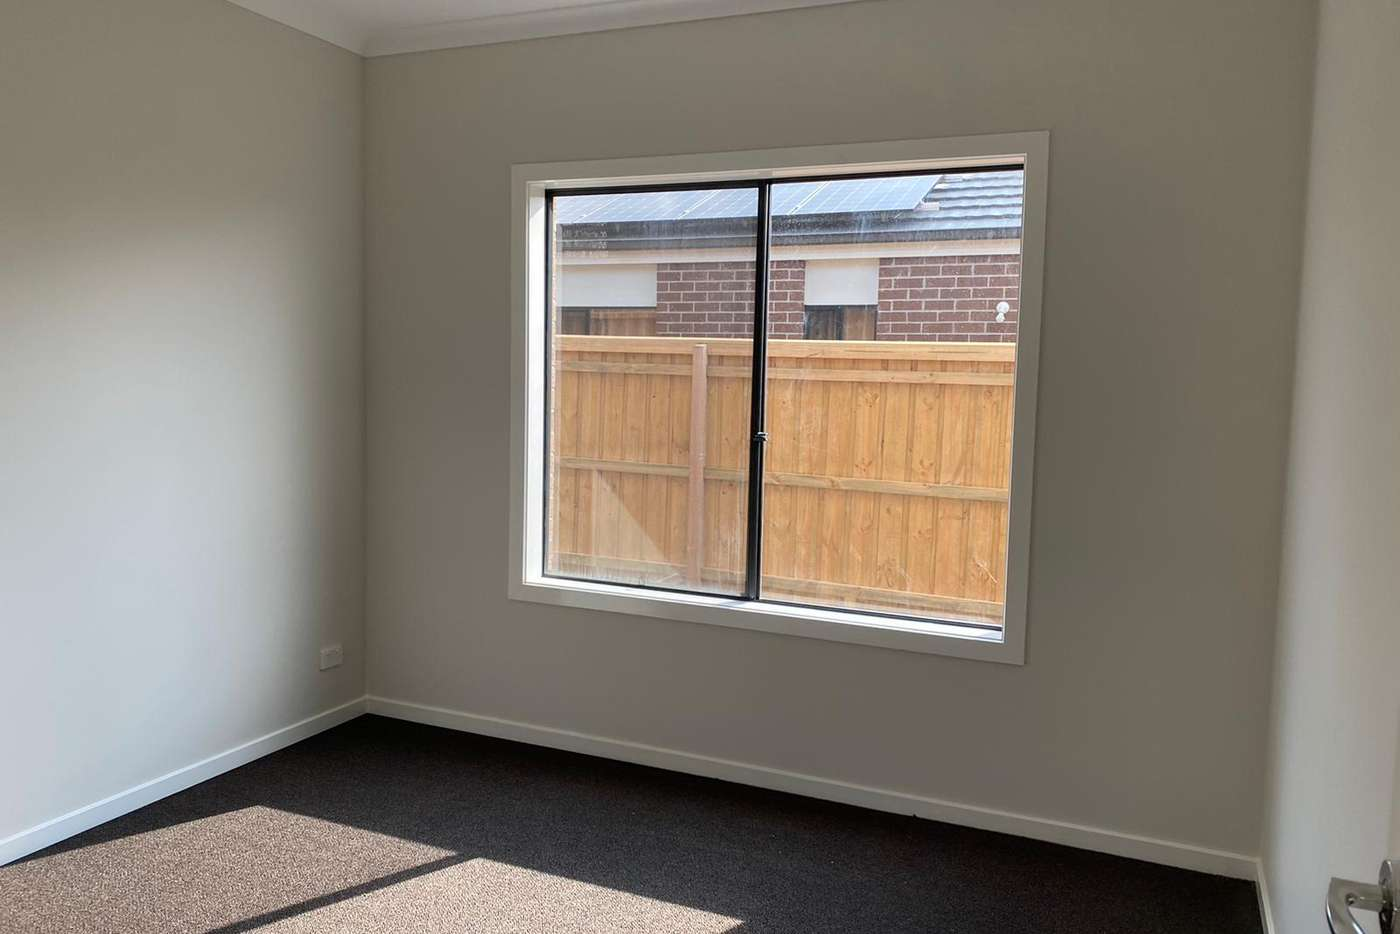 Sixth view of Homely house listing, 19 Chaparral Street, Wyndham Vale VIC 3024